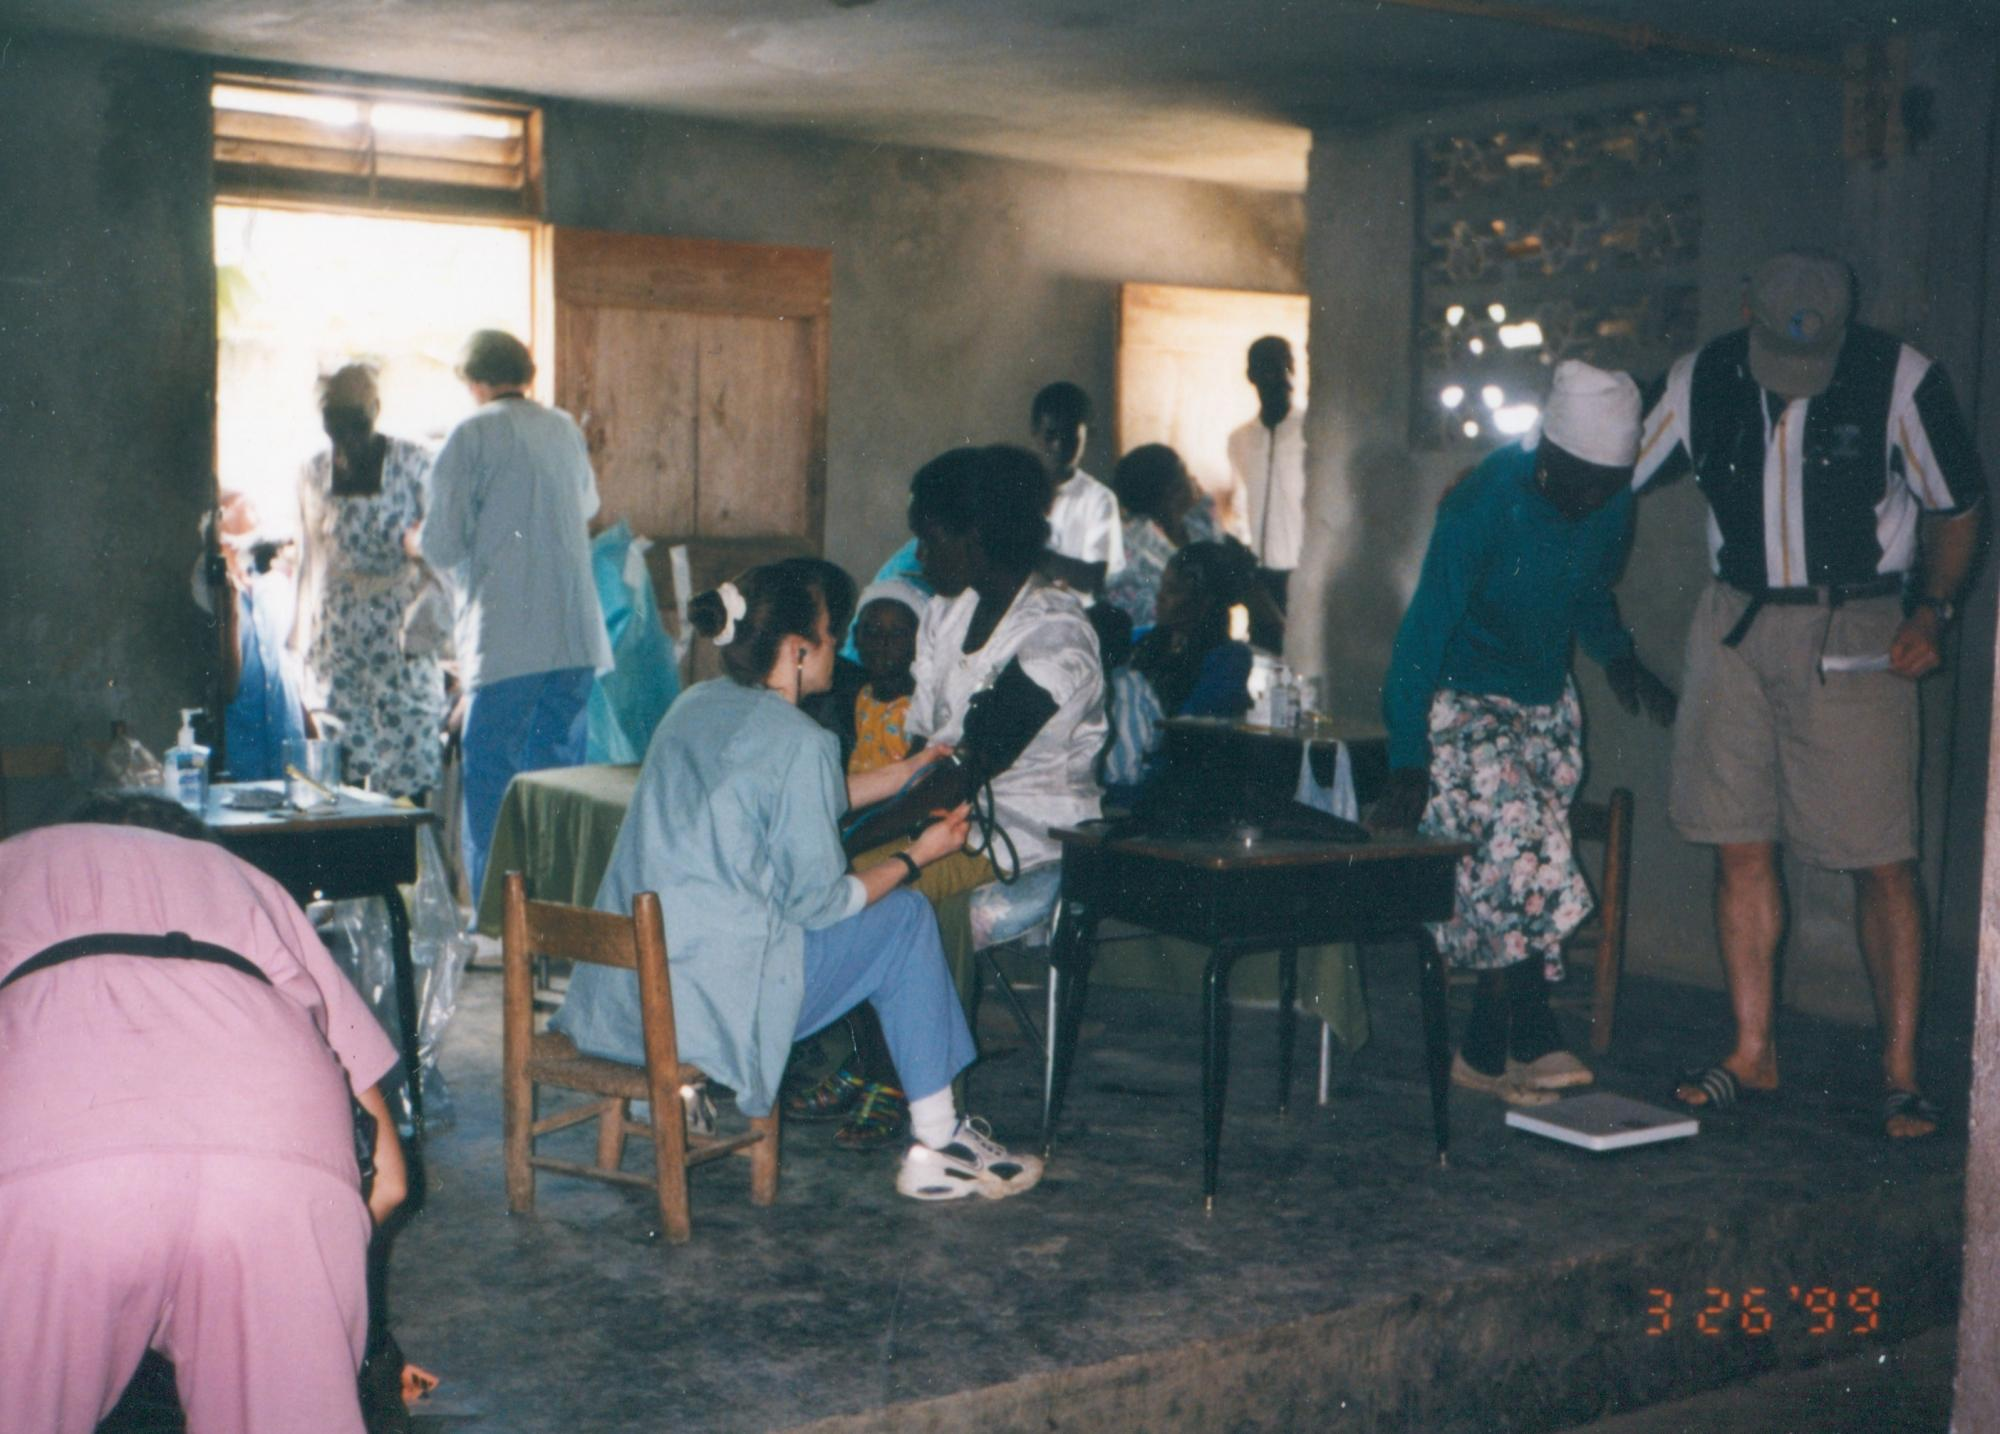 1999_Thiotte_area_busy_Vital_checkups_p_Dr_MM_image30.jpg